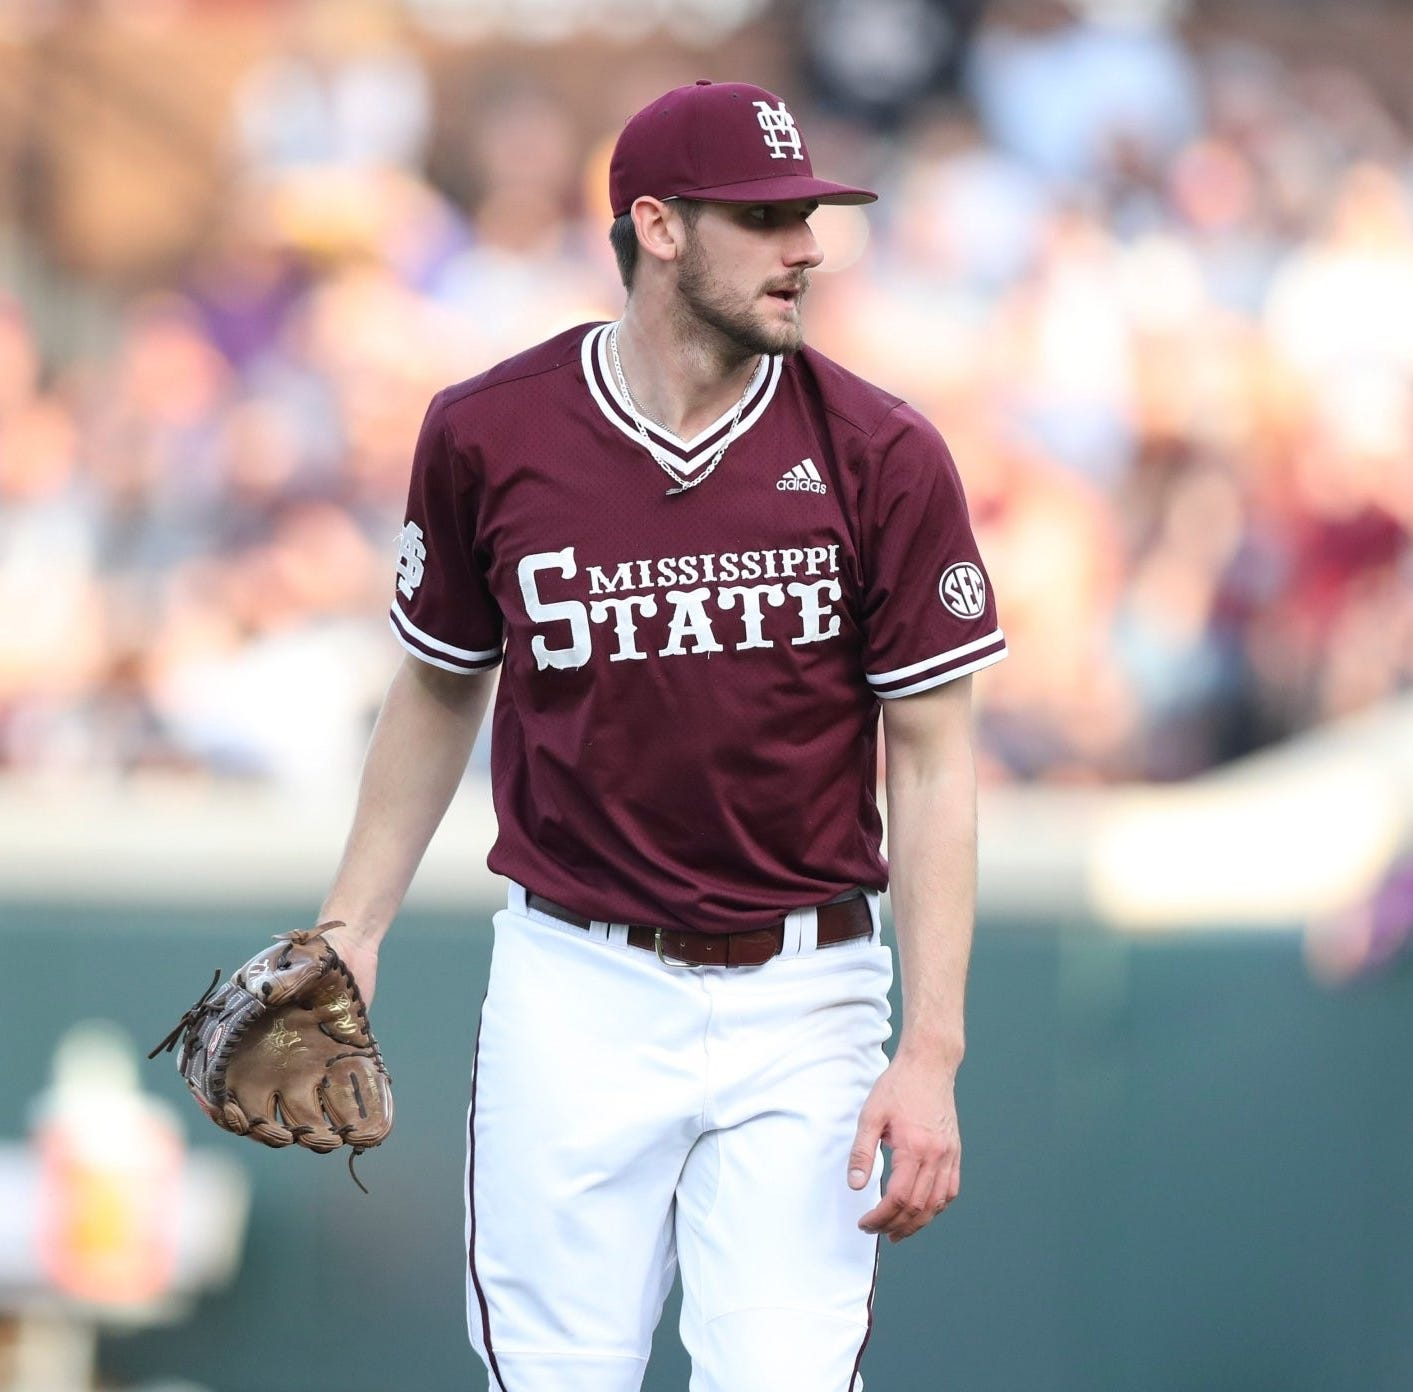 Mississippi State Bulldogs beat Tennessee Volunteers in extra innings